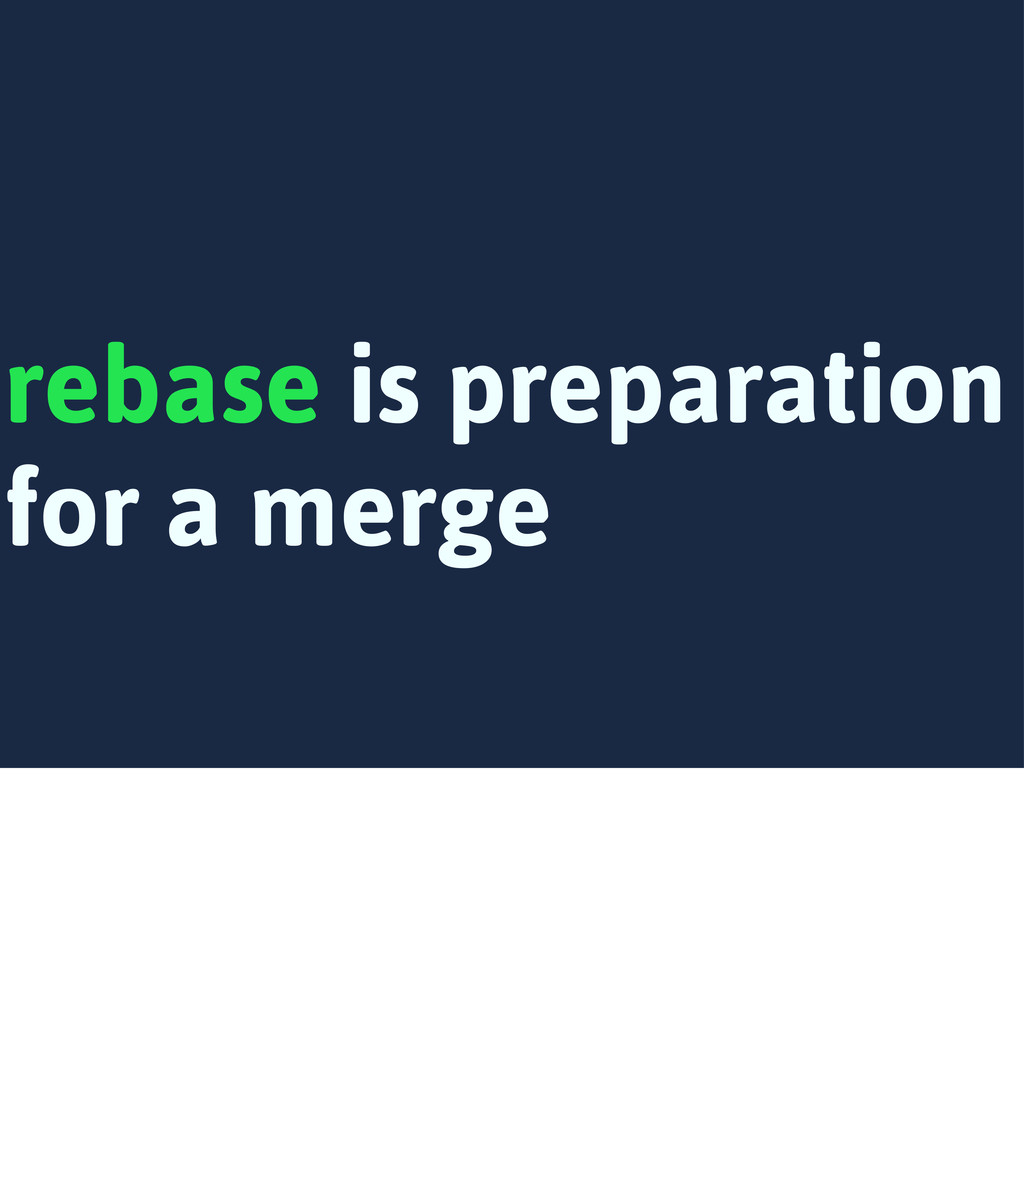 rebase is preparation for a merge